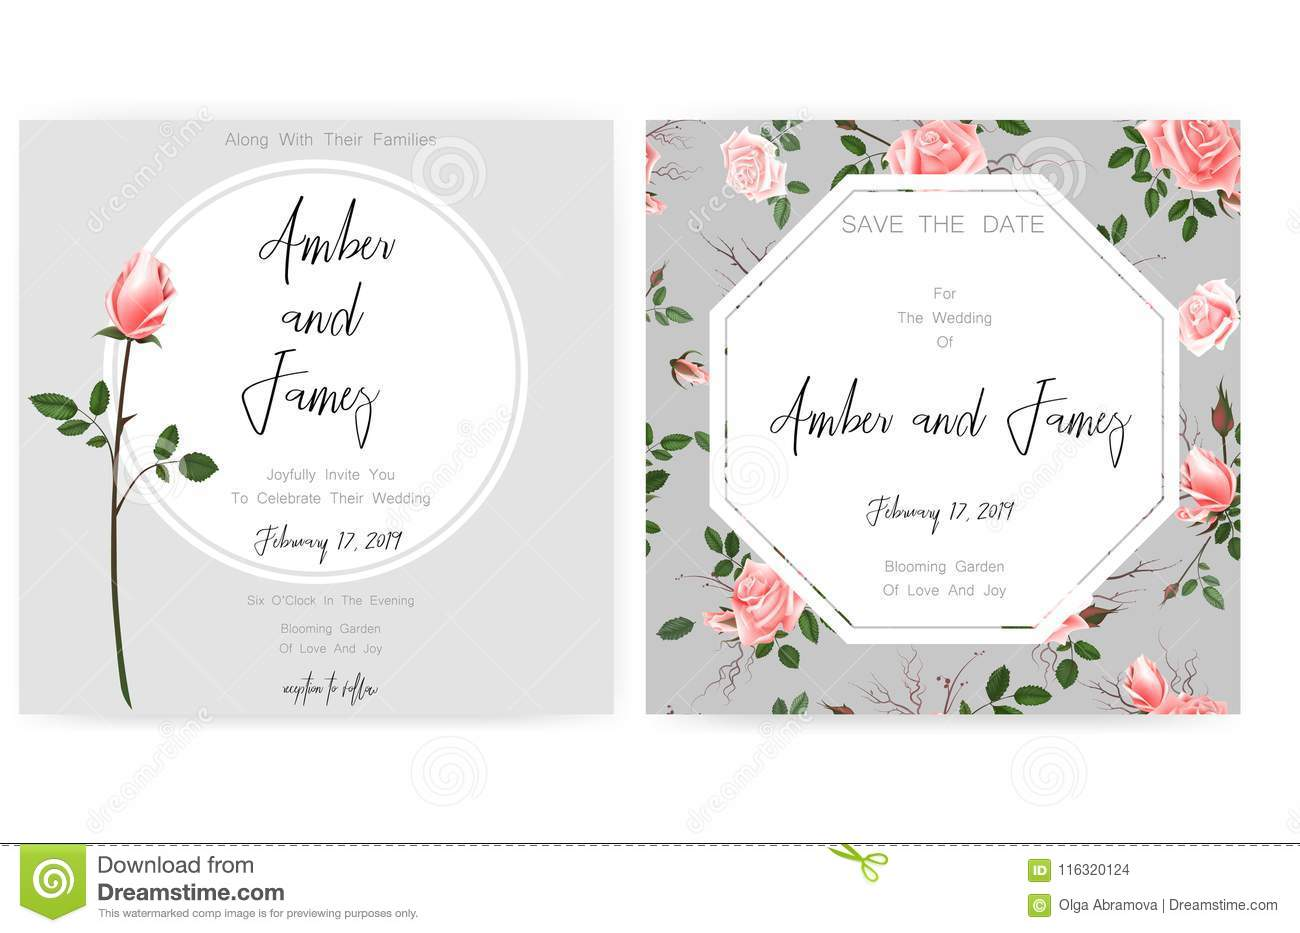 Save the date card wedding invitation greeting card with beautiful download save the date card wedding invitation greeting card with beautiful flowers and letters m4hsunfo